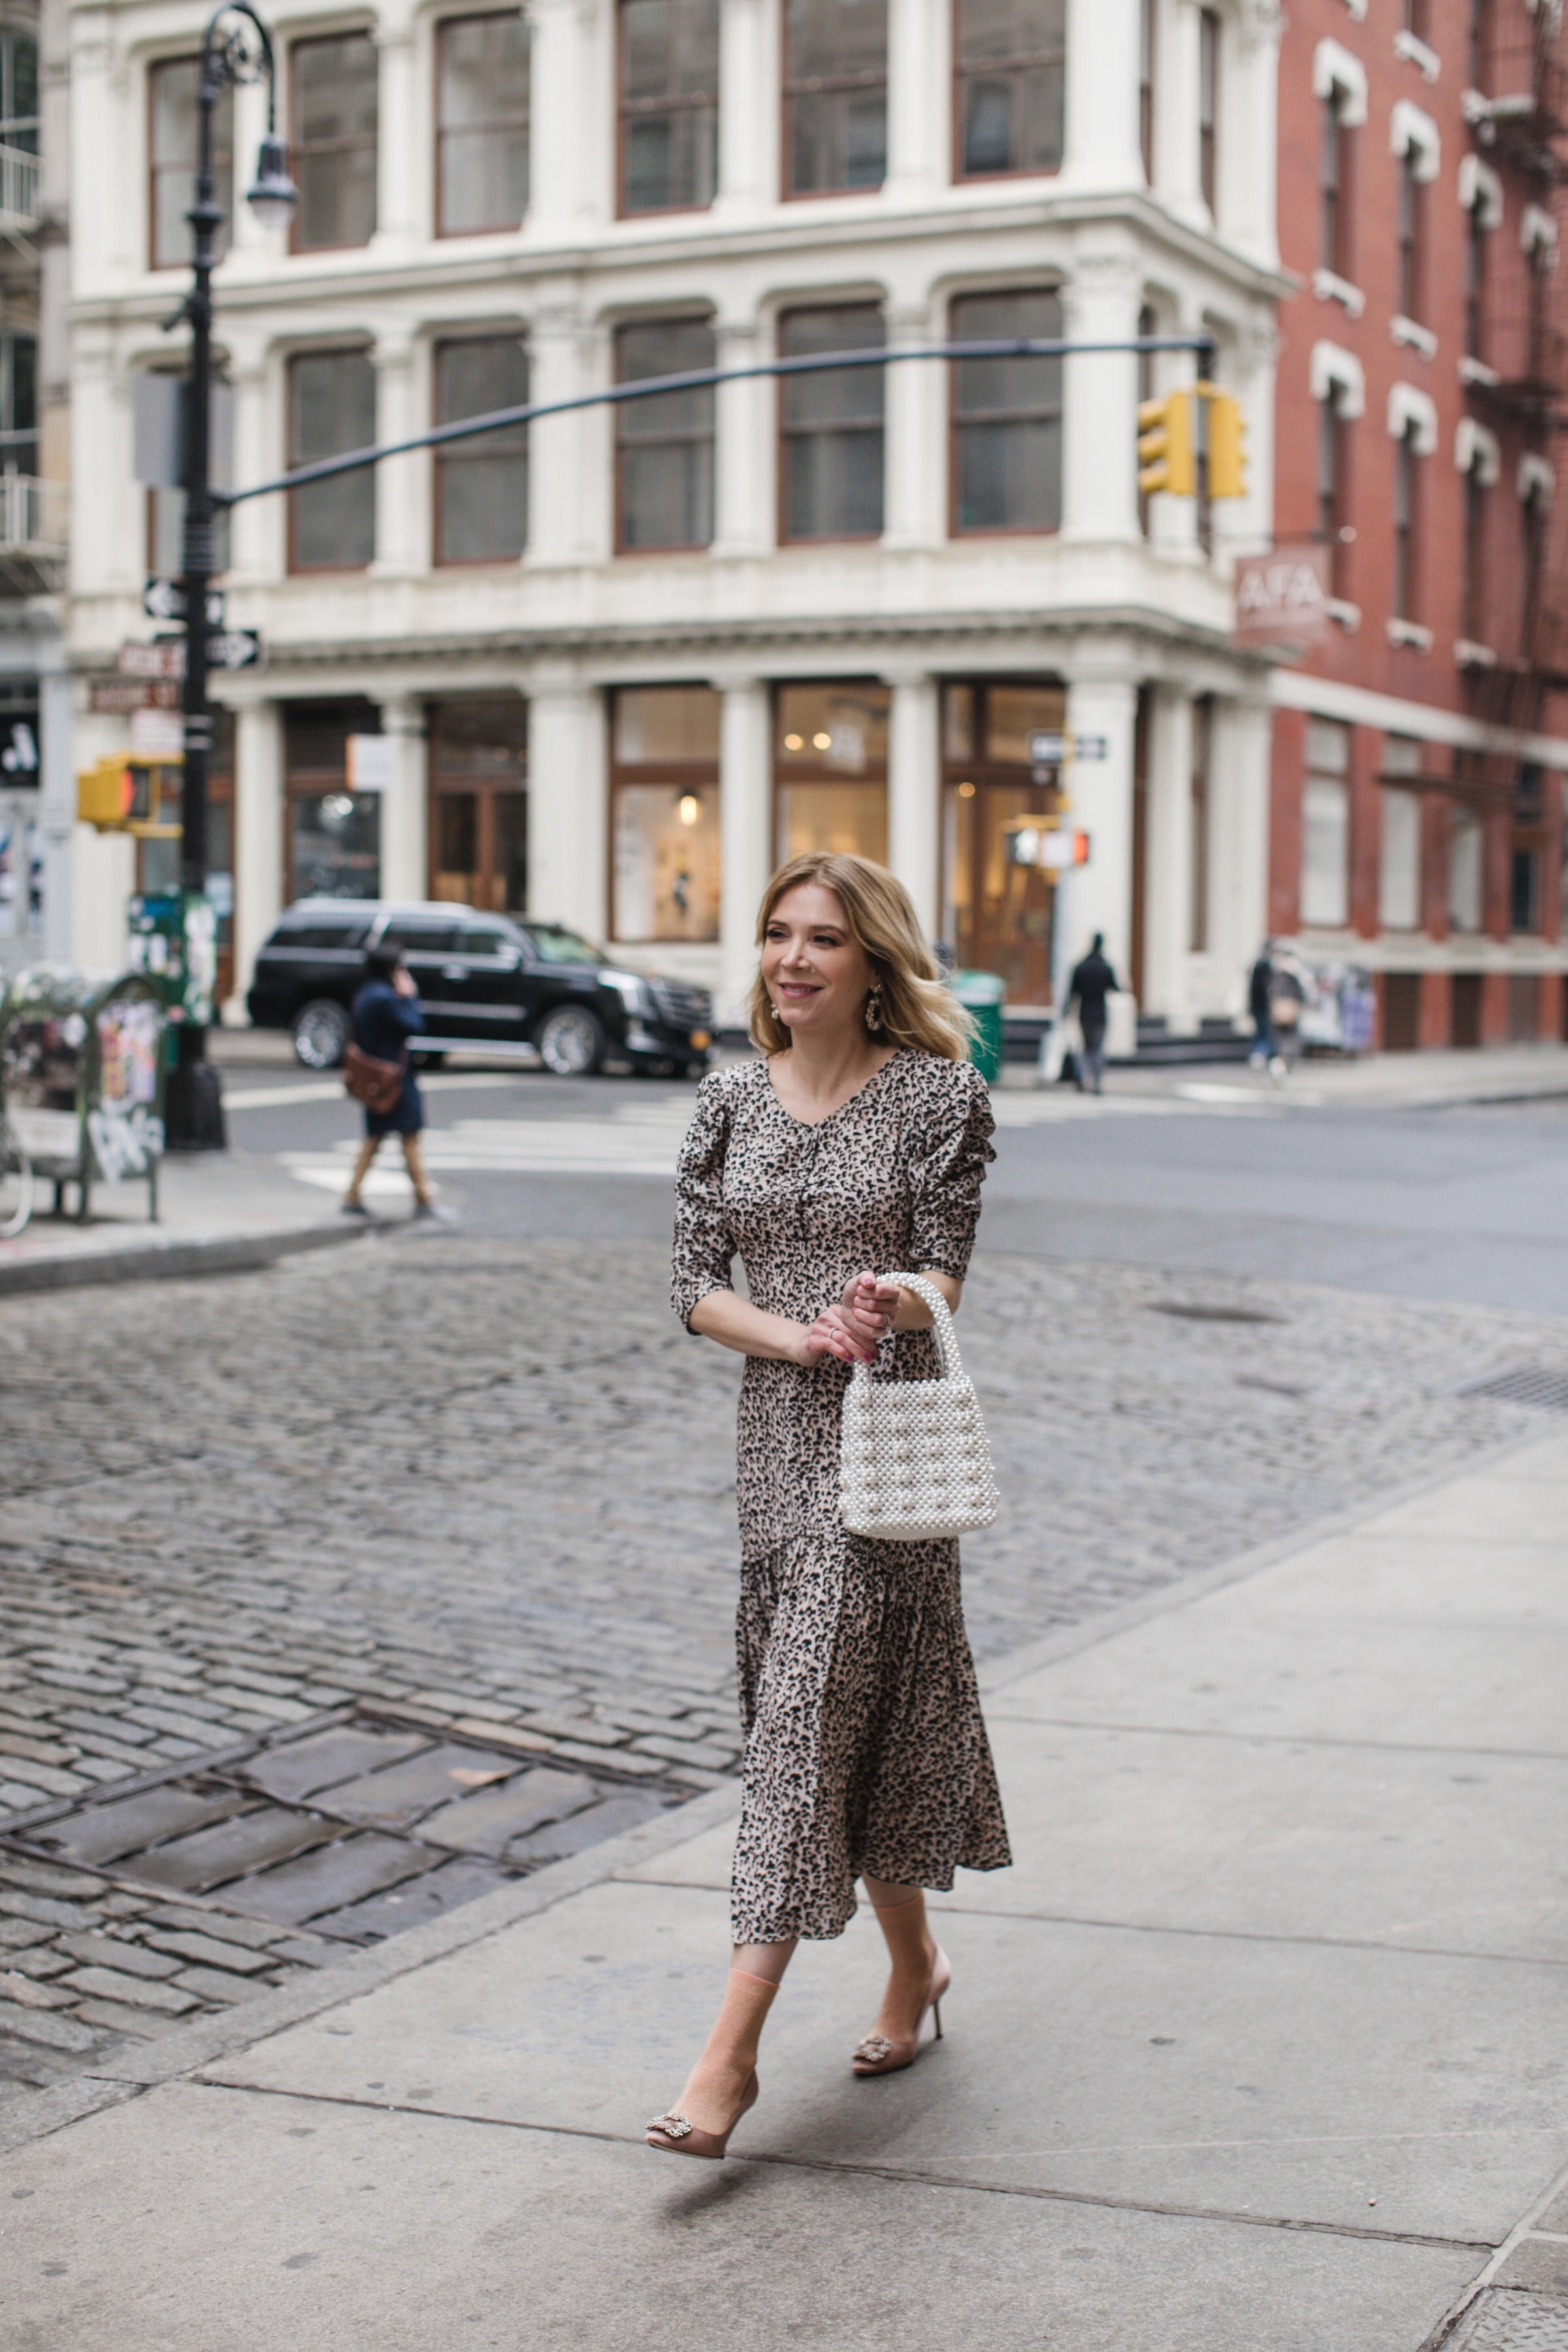 Rebecca Taylor leopard dress, Rebecca Taylor dress, www.abouttheoutfits.com, Laura Bonner, about the outfits